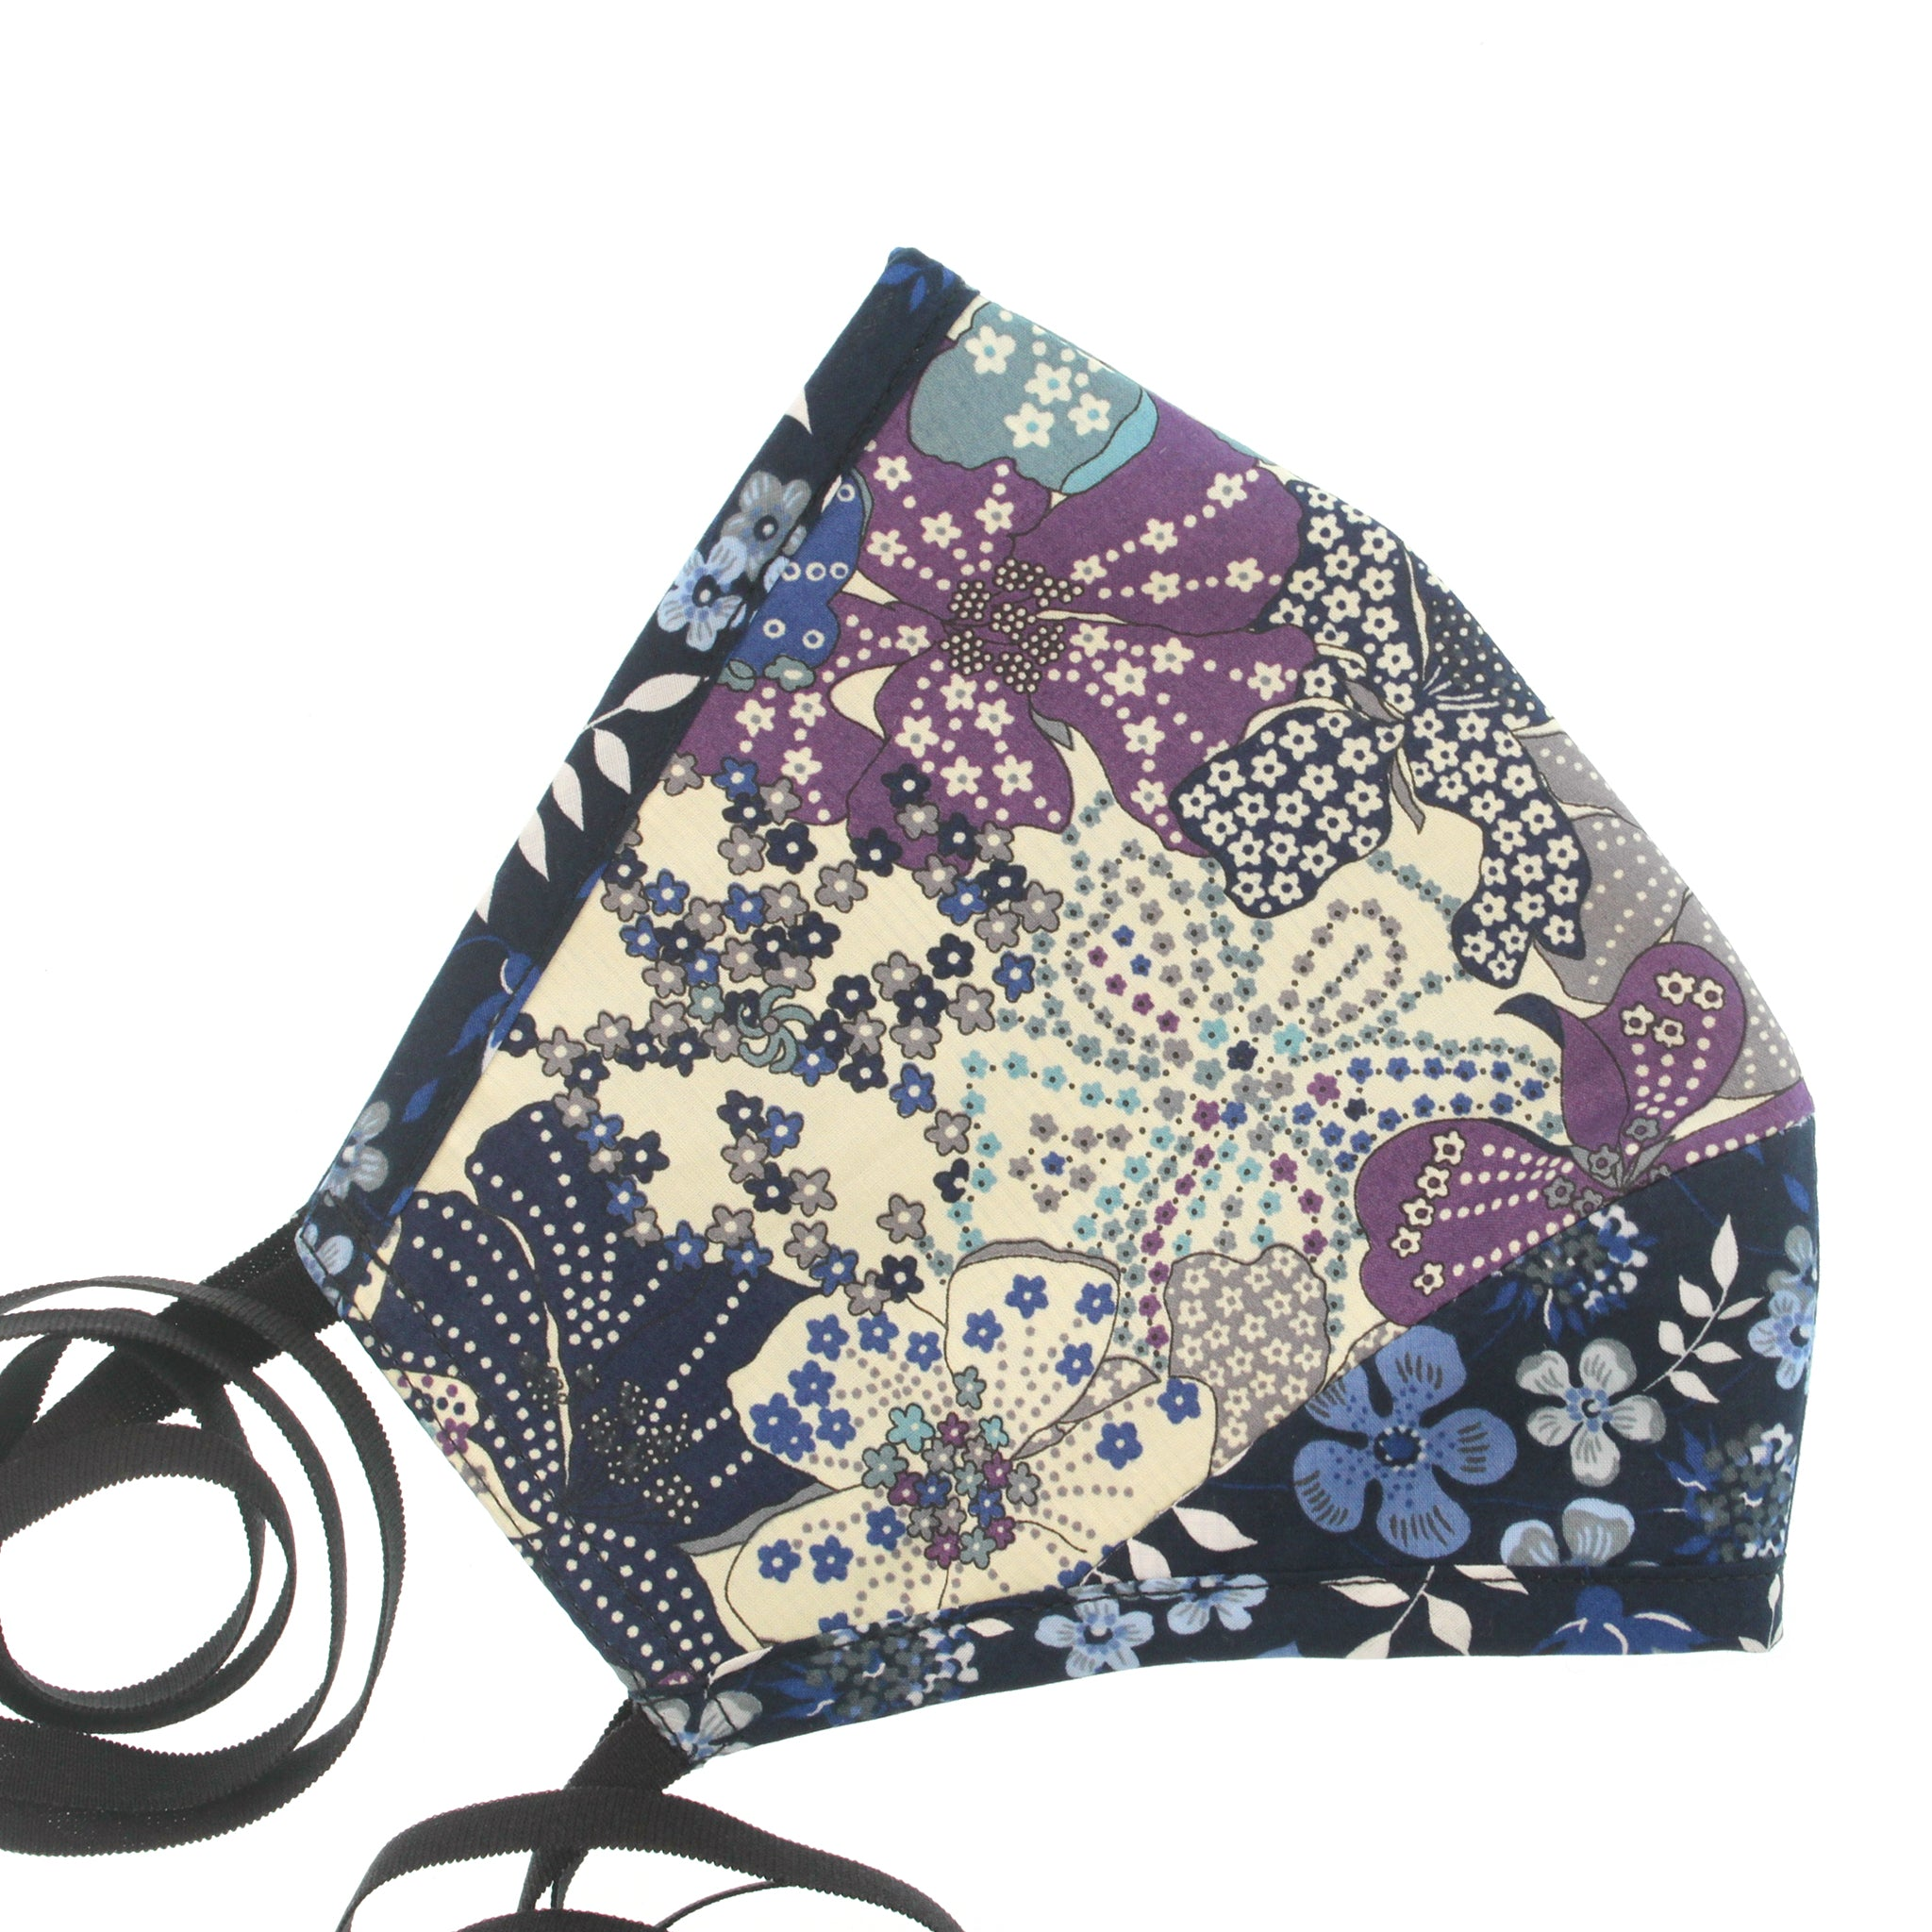 A Liberty Print Face Mask in Blue + Purple Floral Cotton